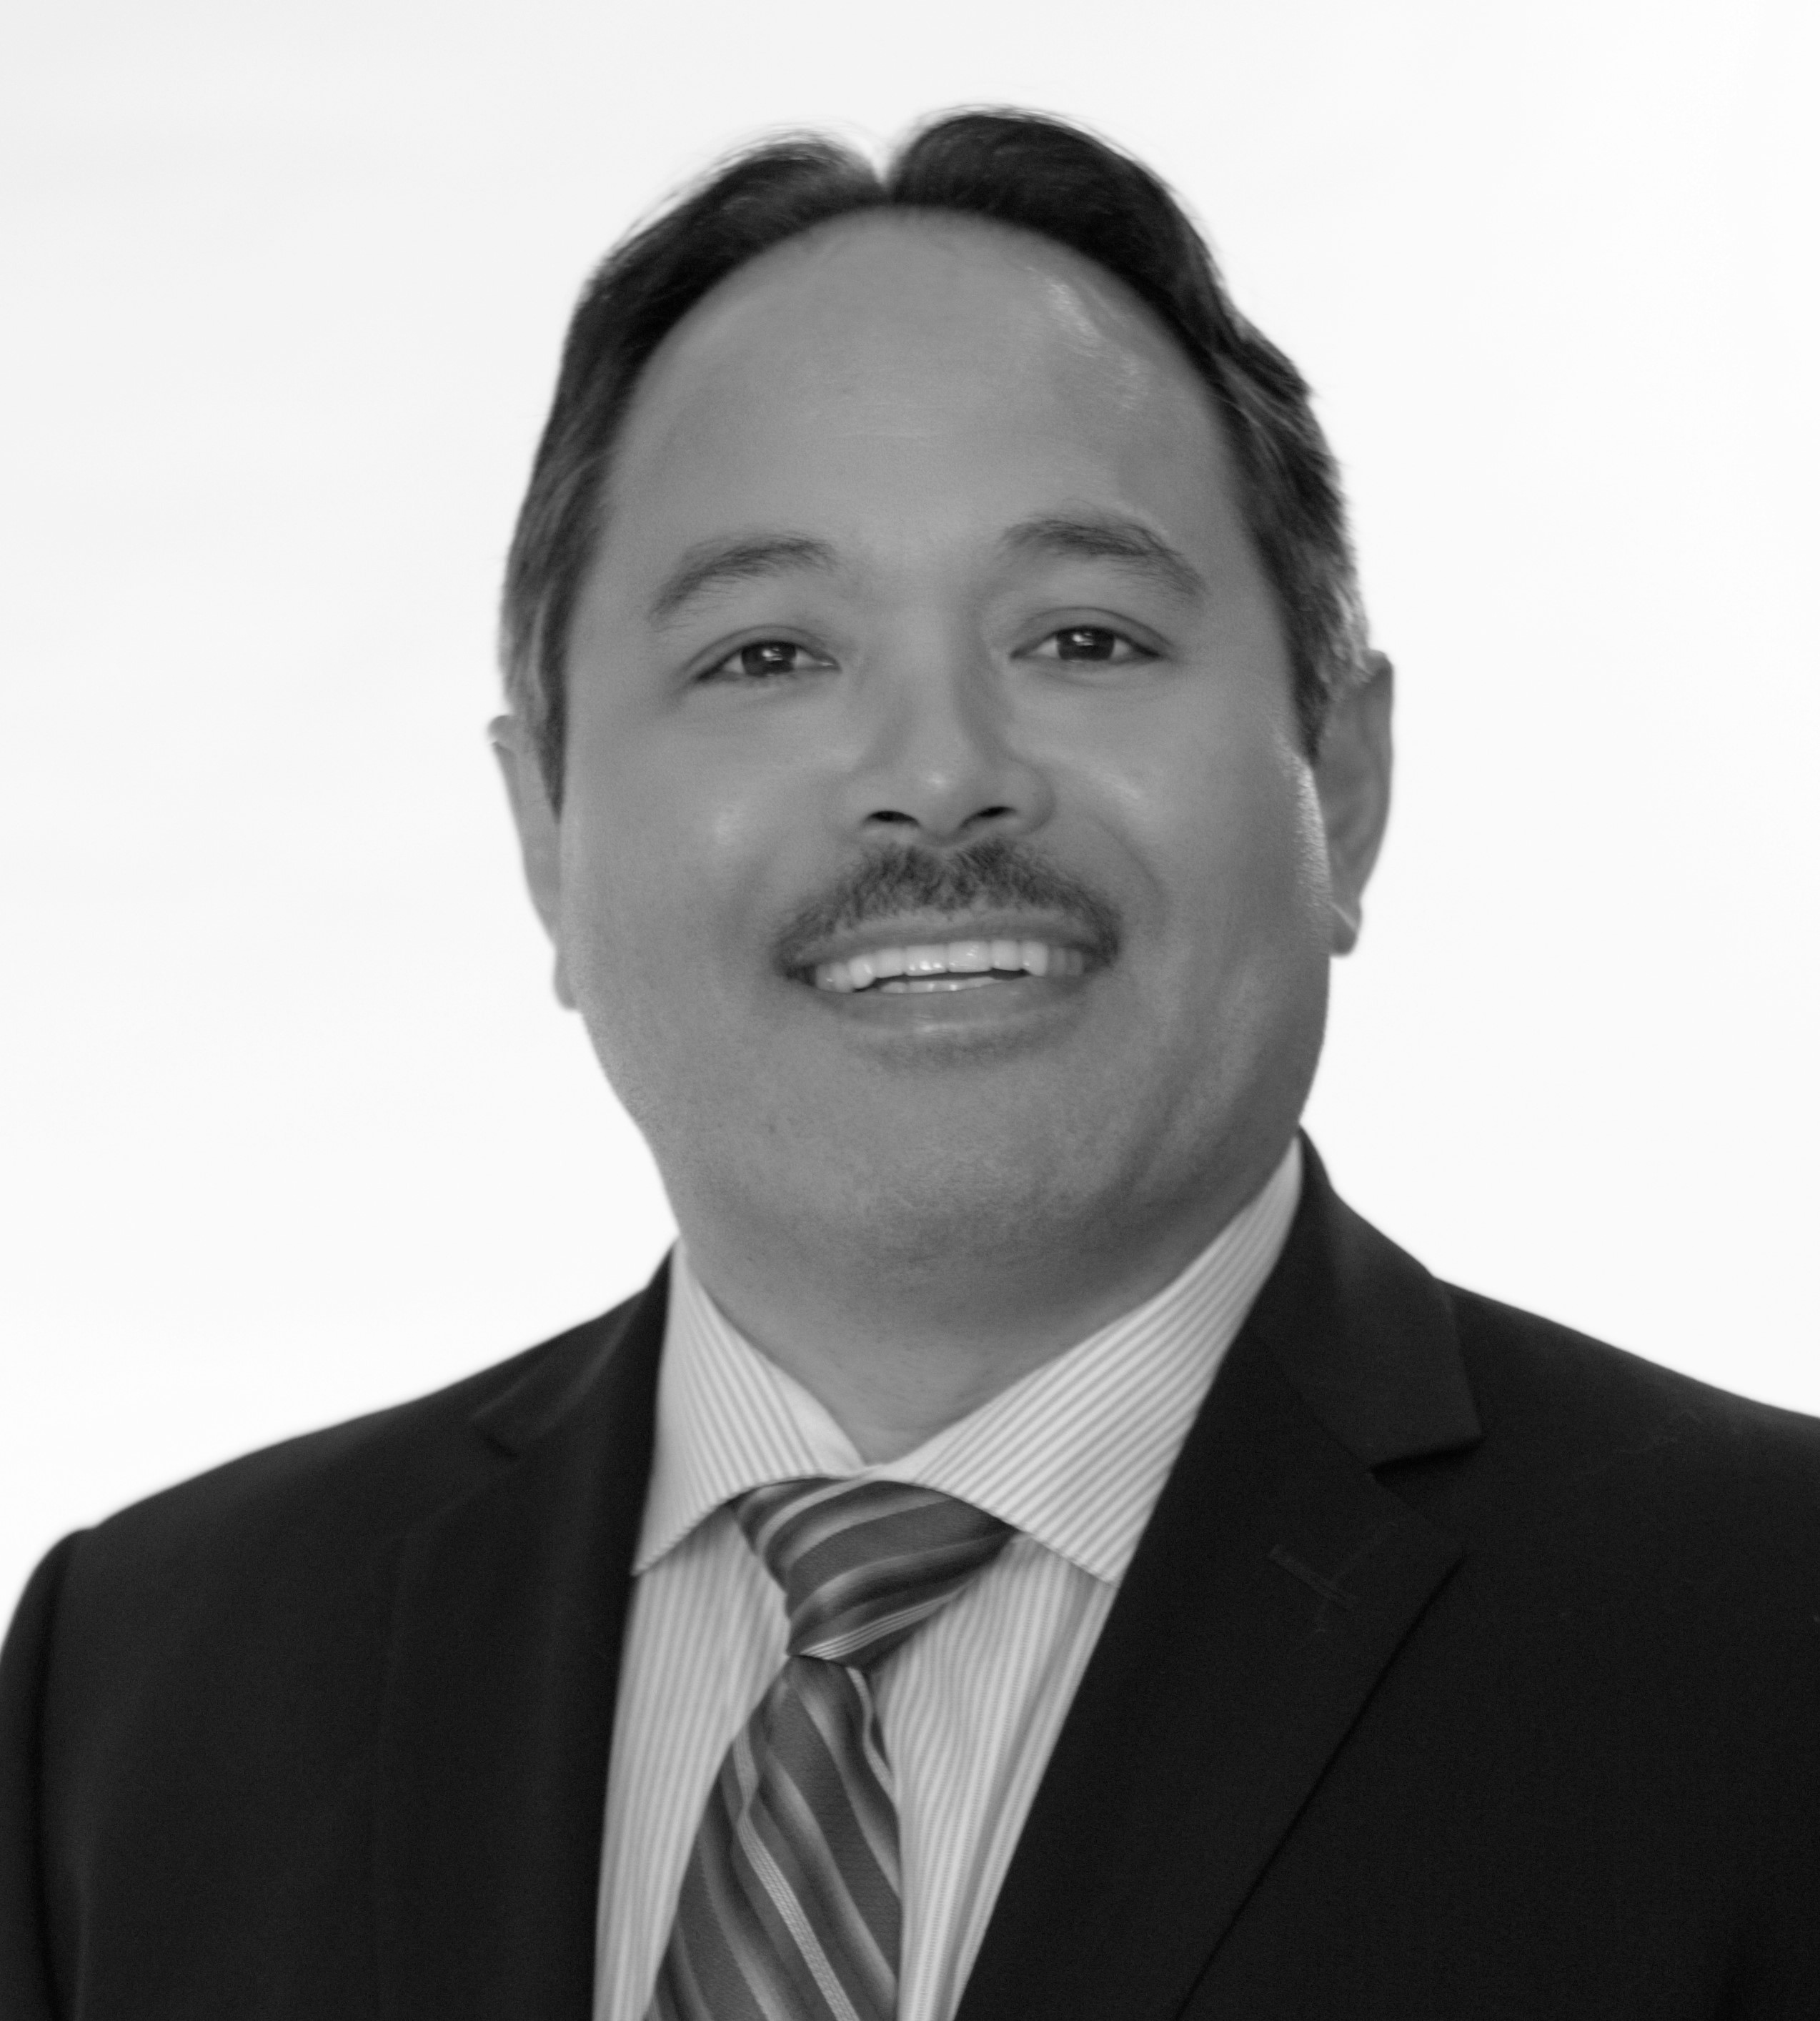 Michael Bandalan, CEO